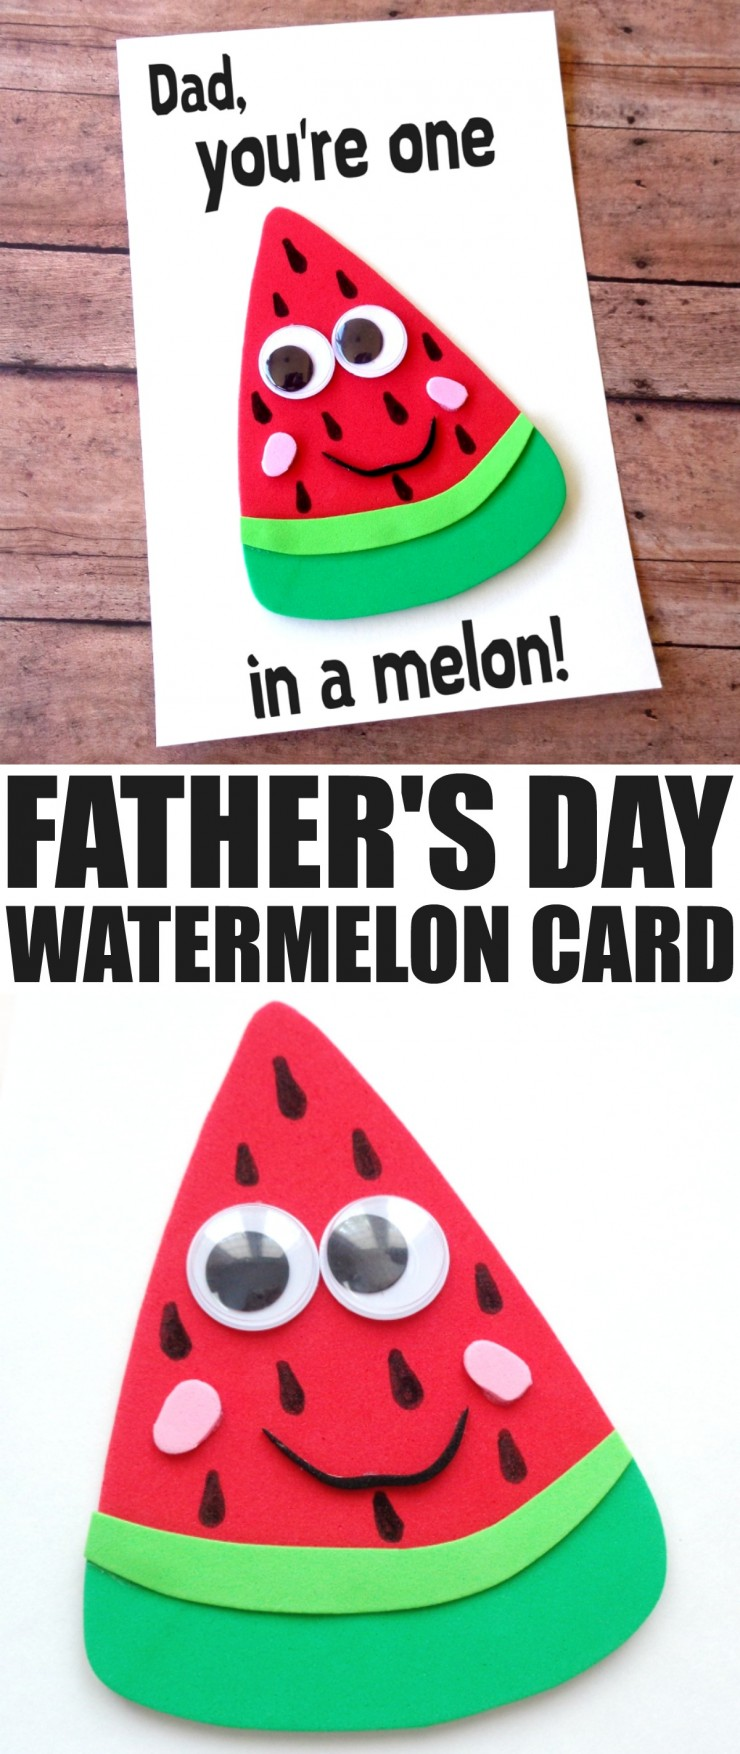 Father's Day is coming up and while it can be difficult to figure out what colour of tie to get for Dad for Father's Day, a hand made card is always going to be a hit. This DIY Father's Day Watermelon Card is the perfect way to show Dad that he is ONE IN A MELON! So punny, just like Dad!